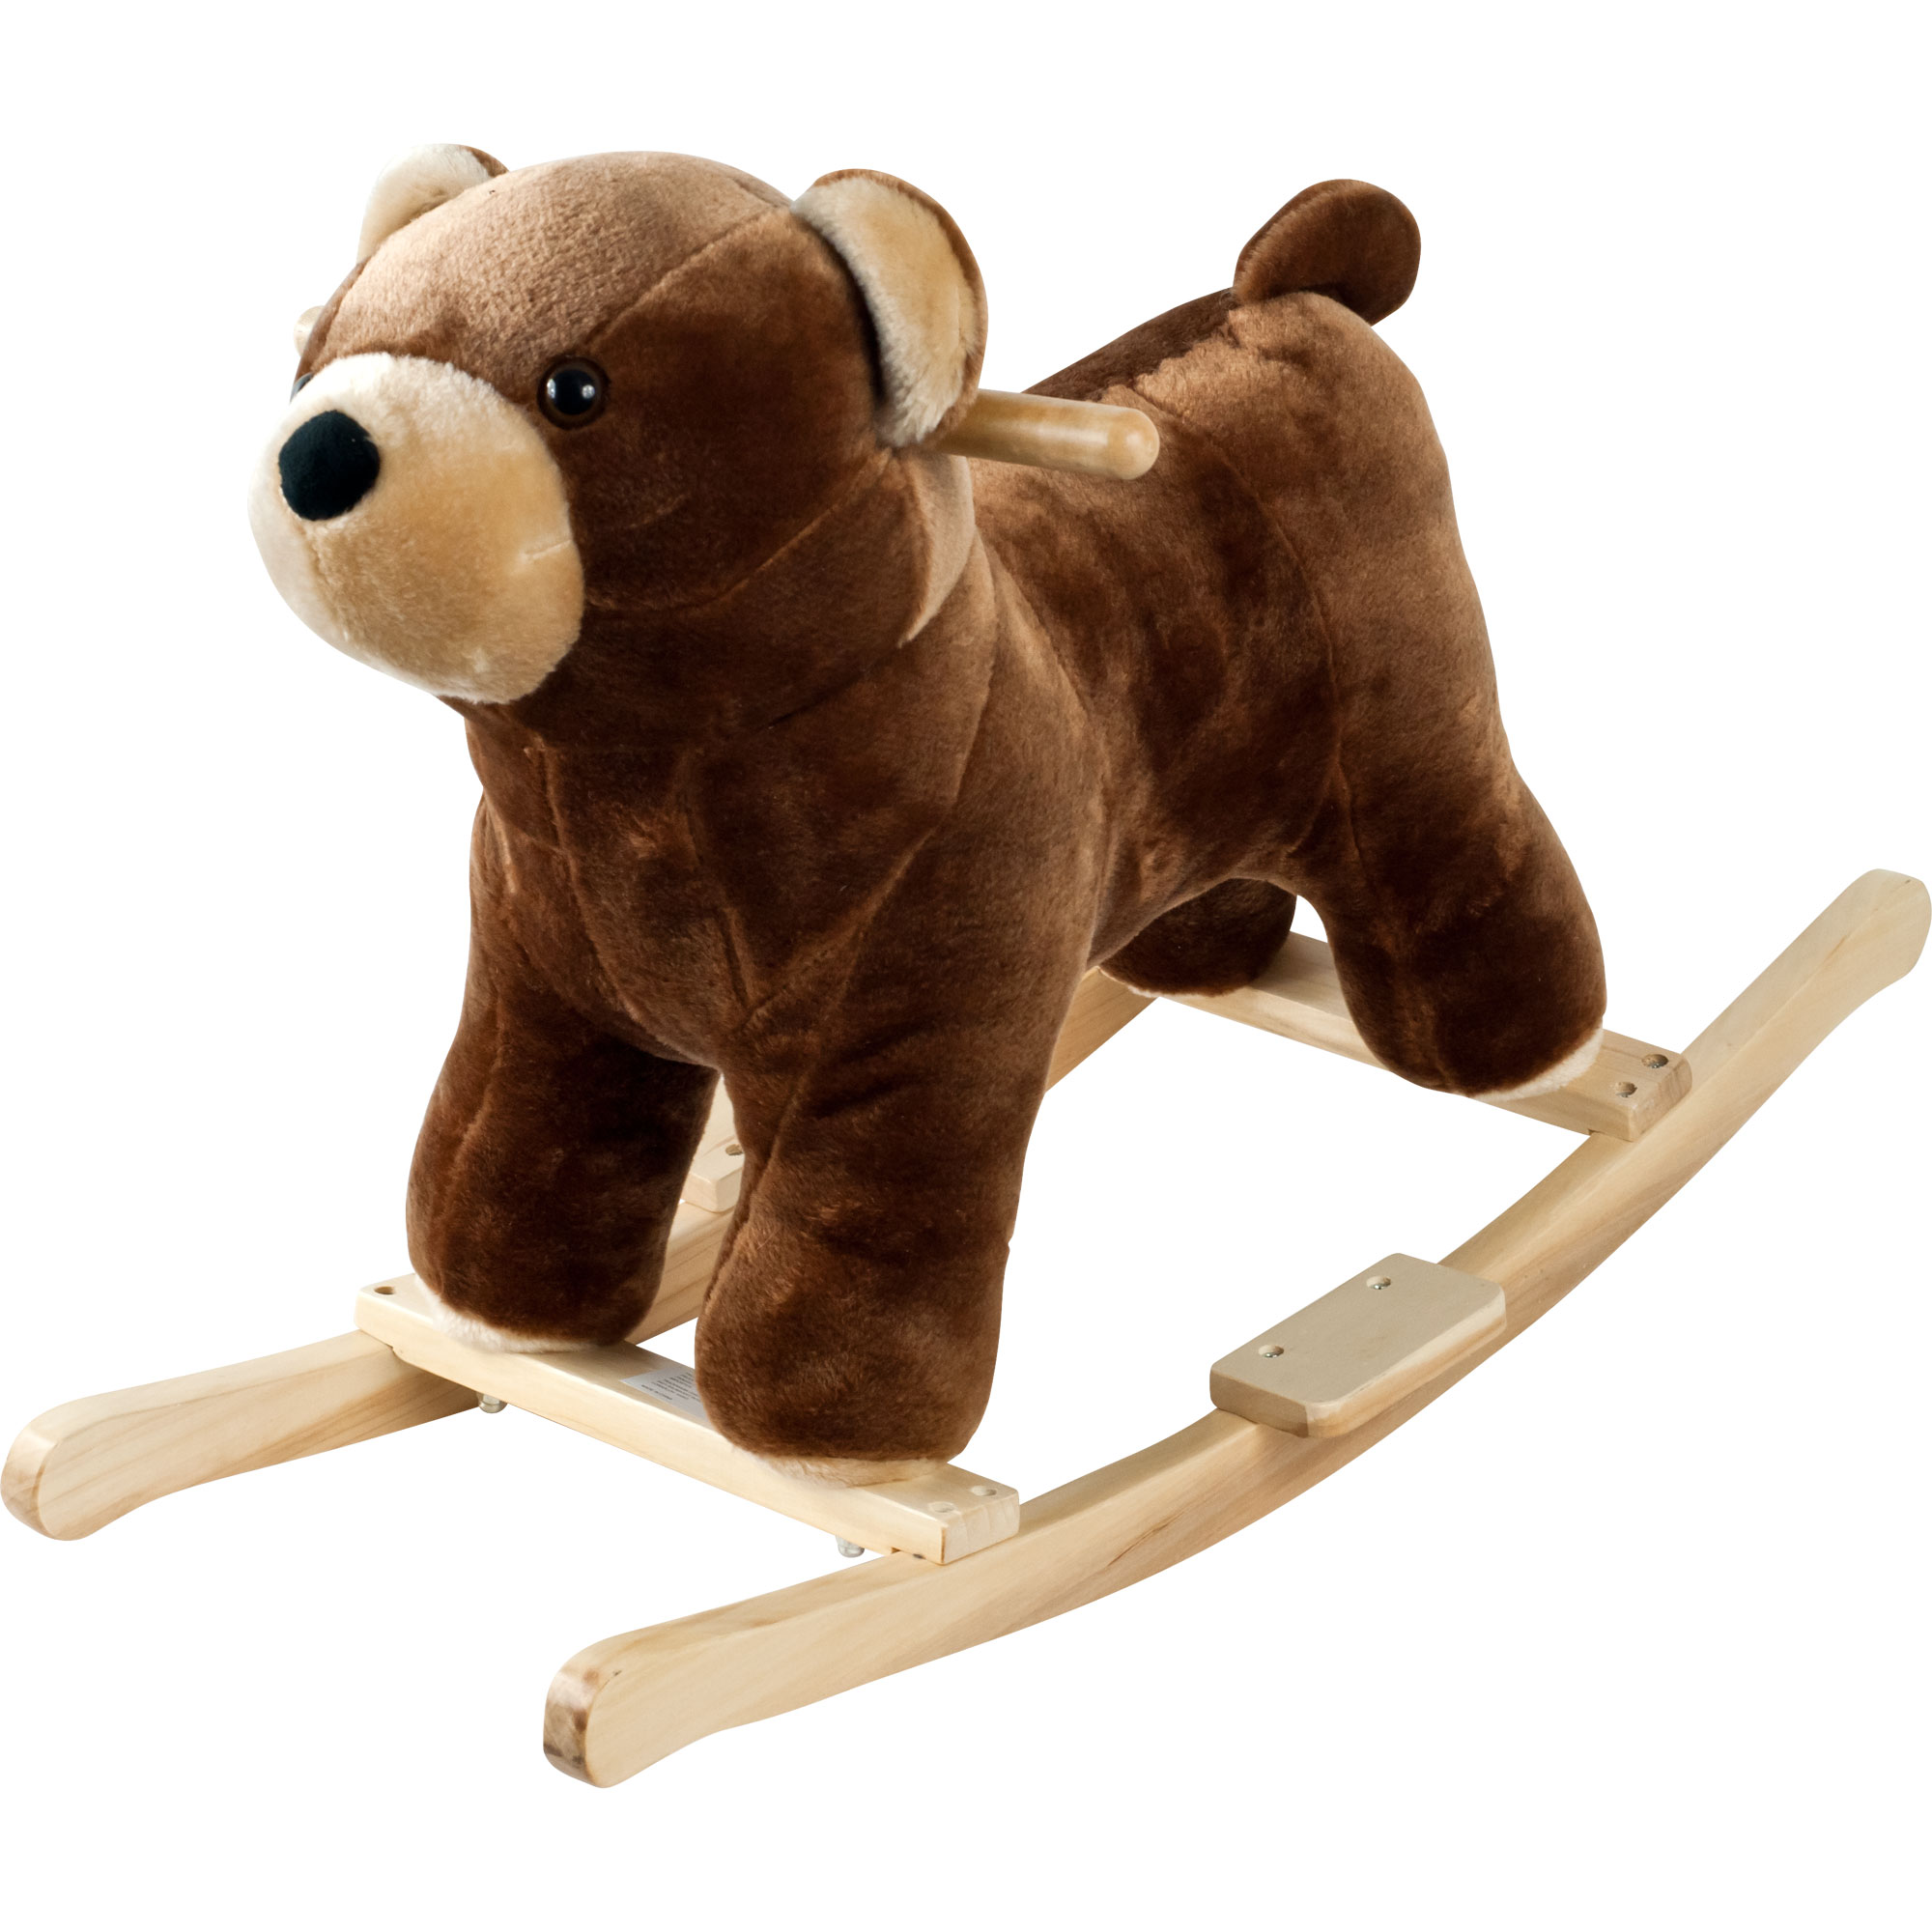 Barry Bear Plush Rocking Animal Toy with Sounds by Happy Trails